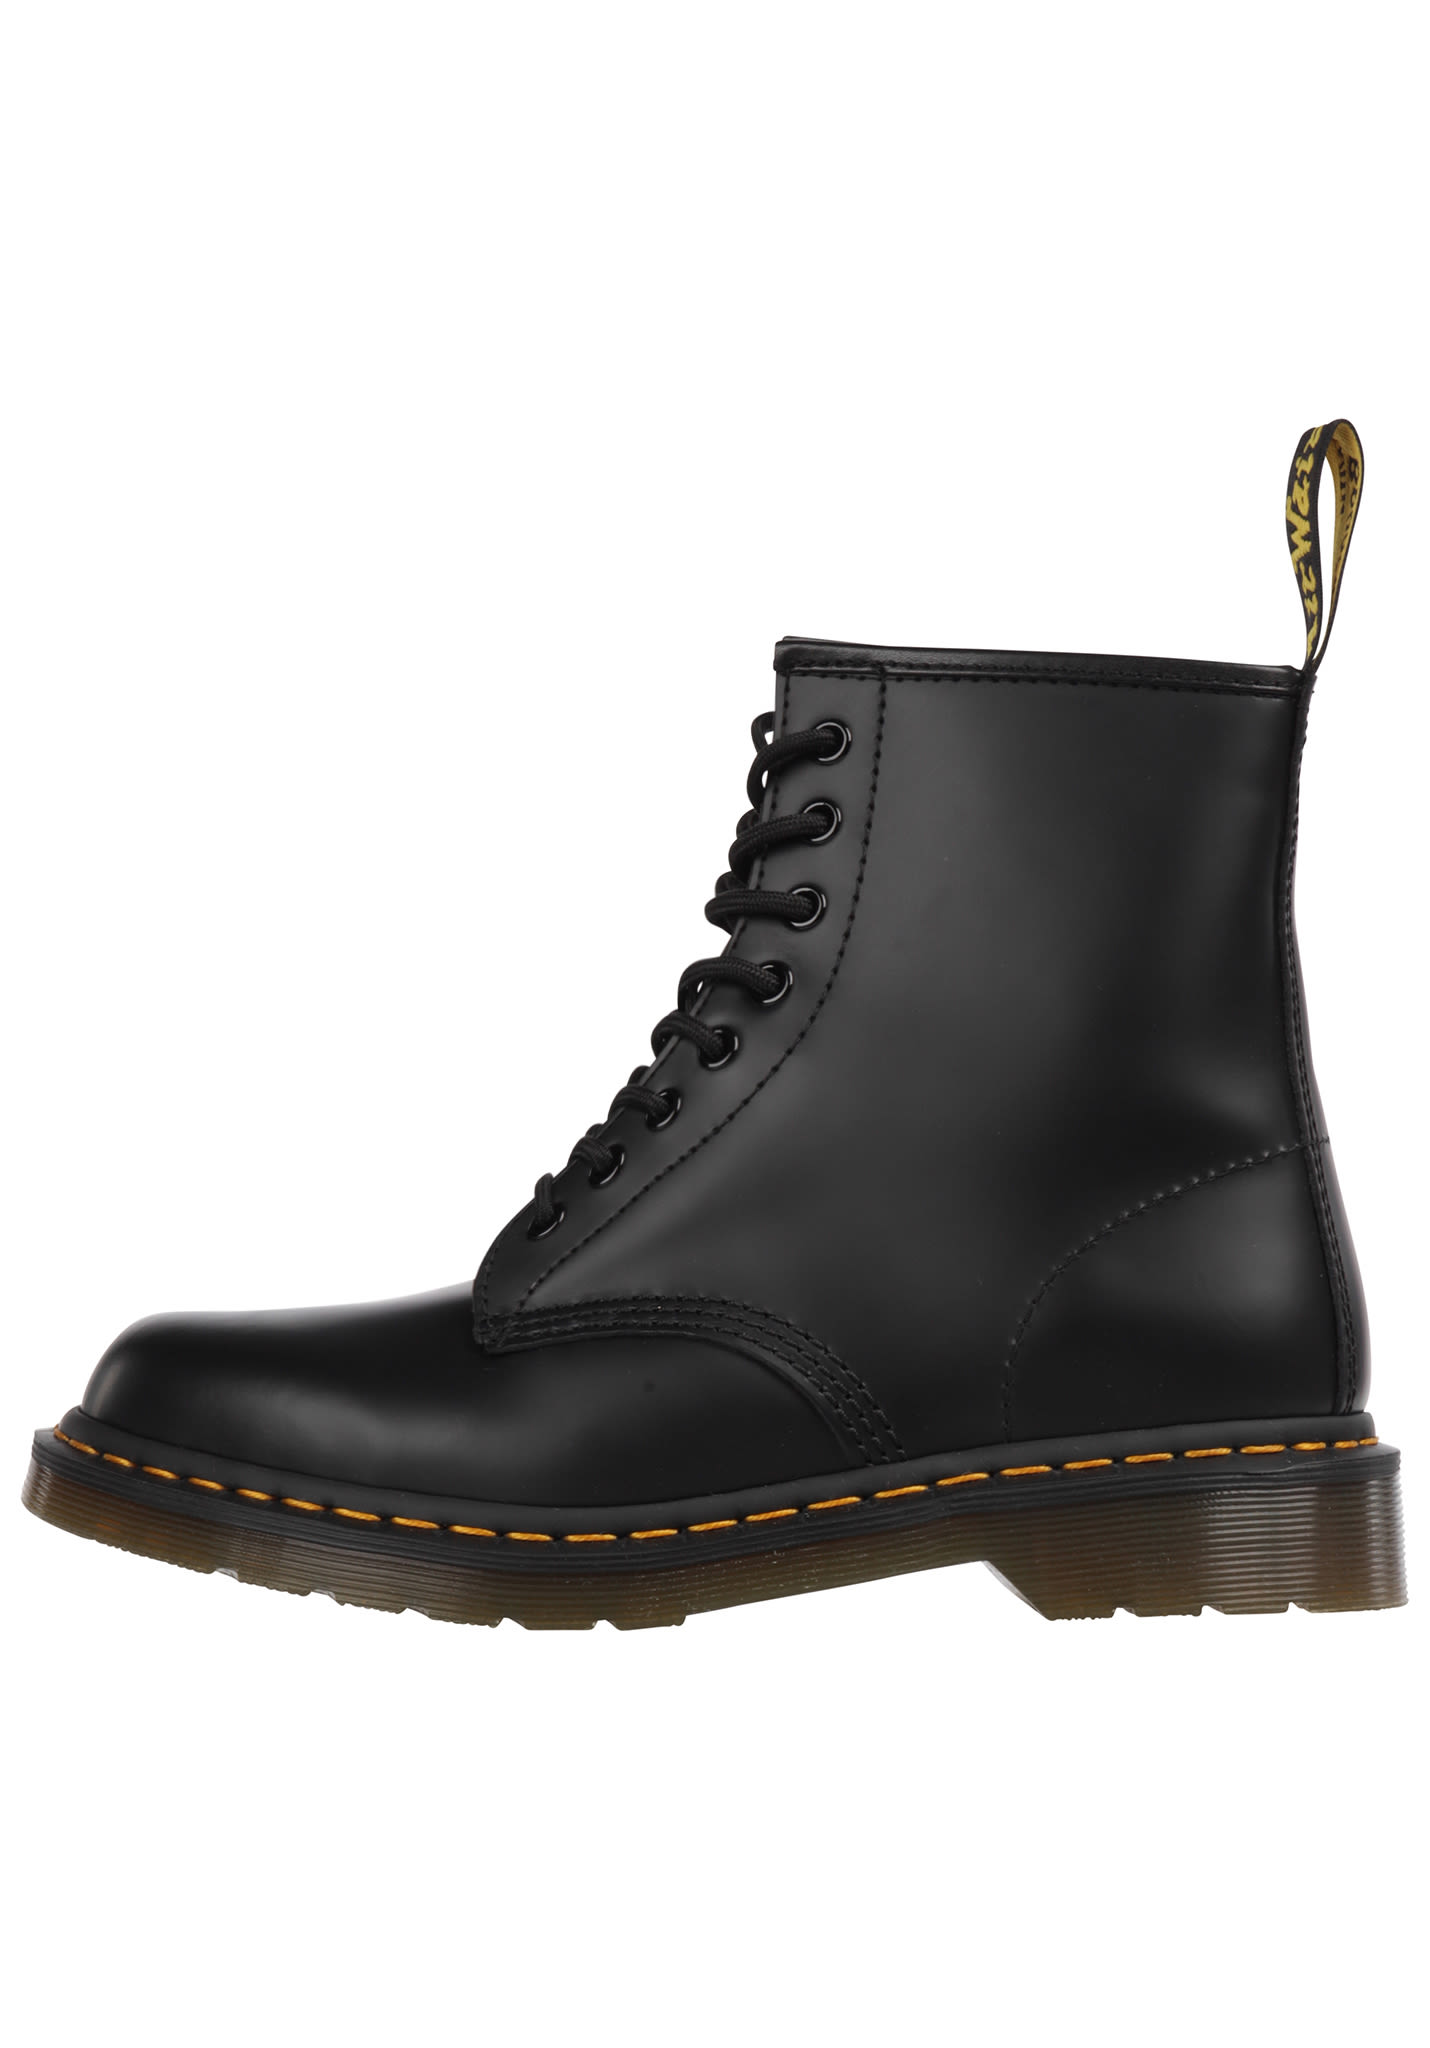 Dr. Martens 1460 Smooth 59 Last - Boots - Black - Planet Sports 8117a060361b